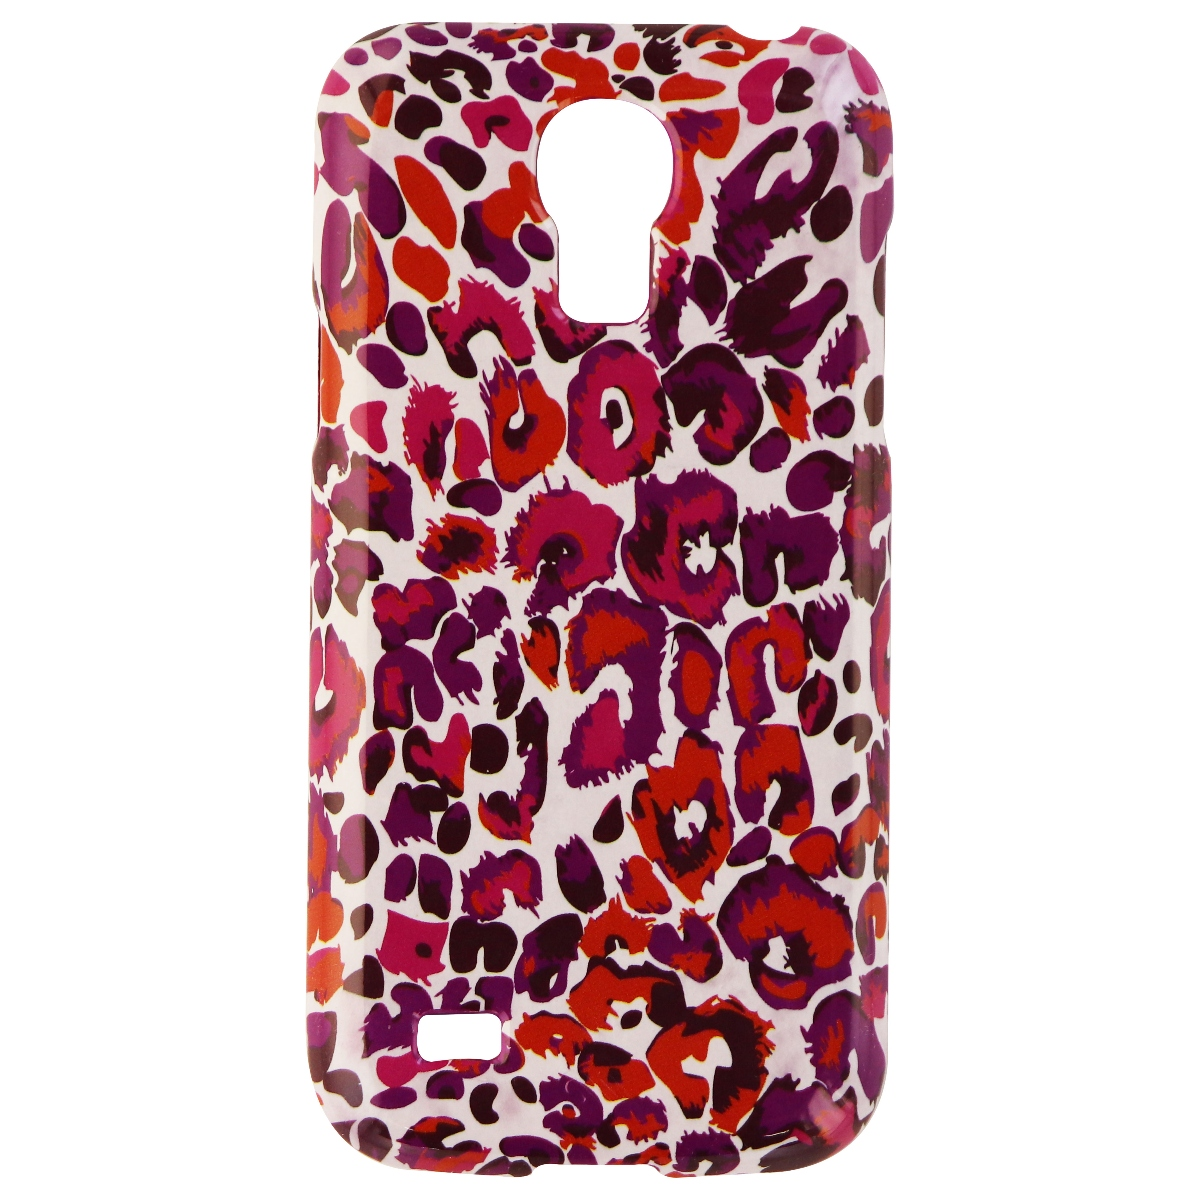 Case-Mate Barely There Slim Hard Case for Samsung Galaxy S4 Mini - Cheetah Print